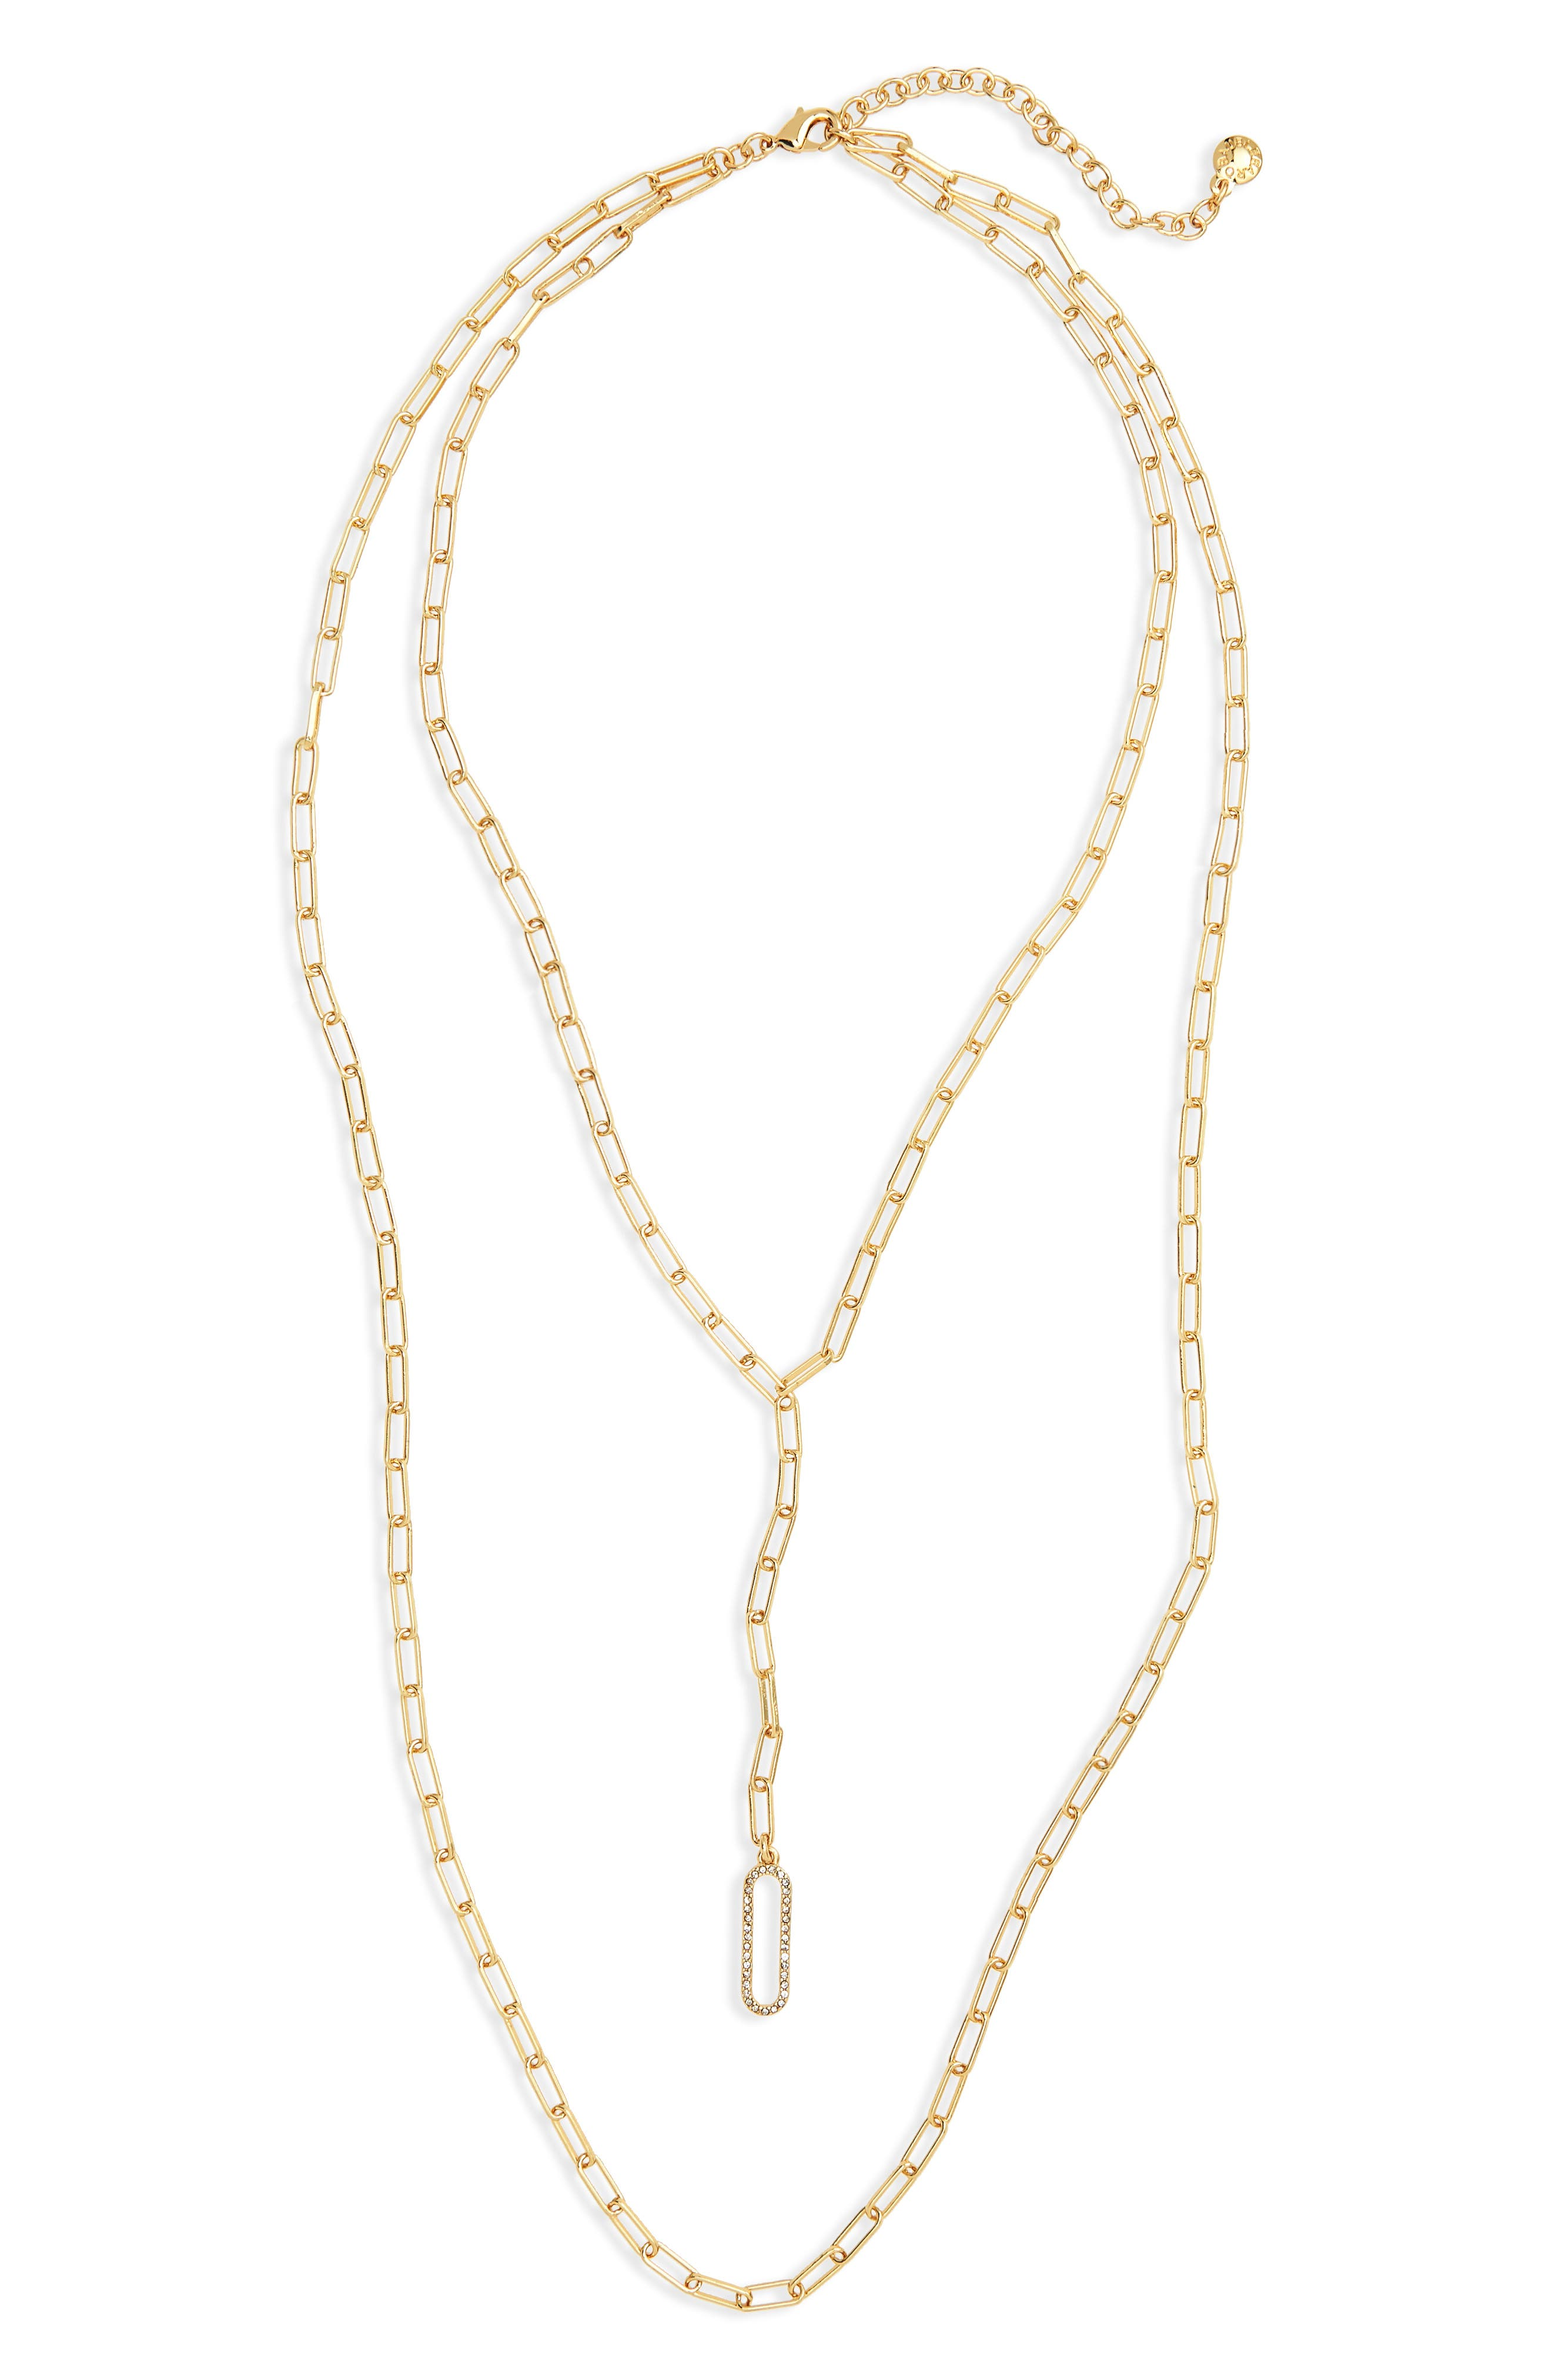 BAUBLEBAR Layered Link Necklace, Main, color, 710